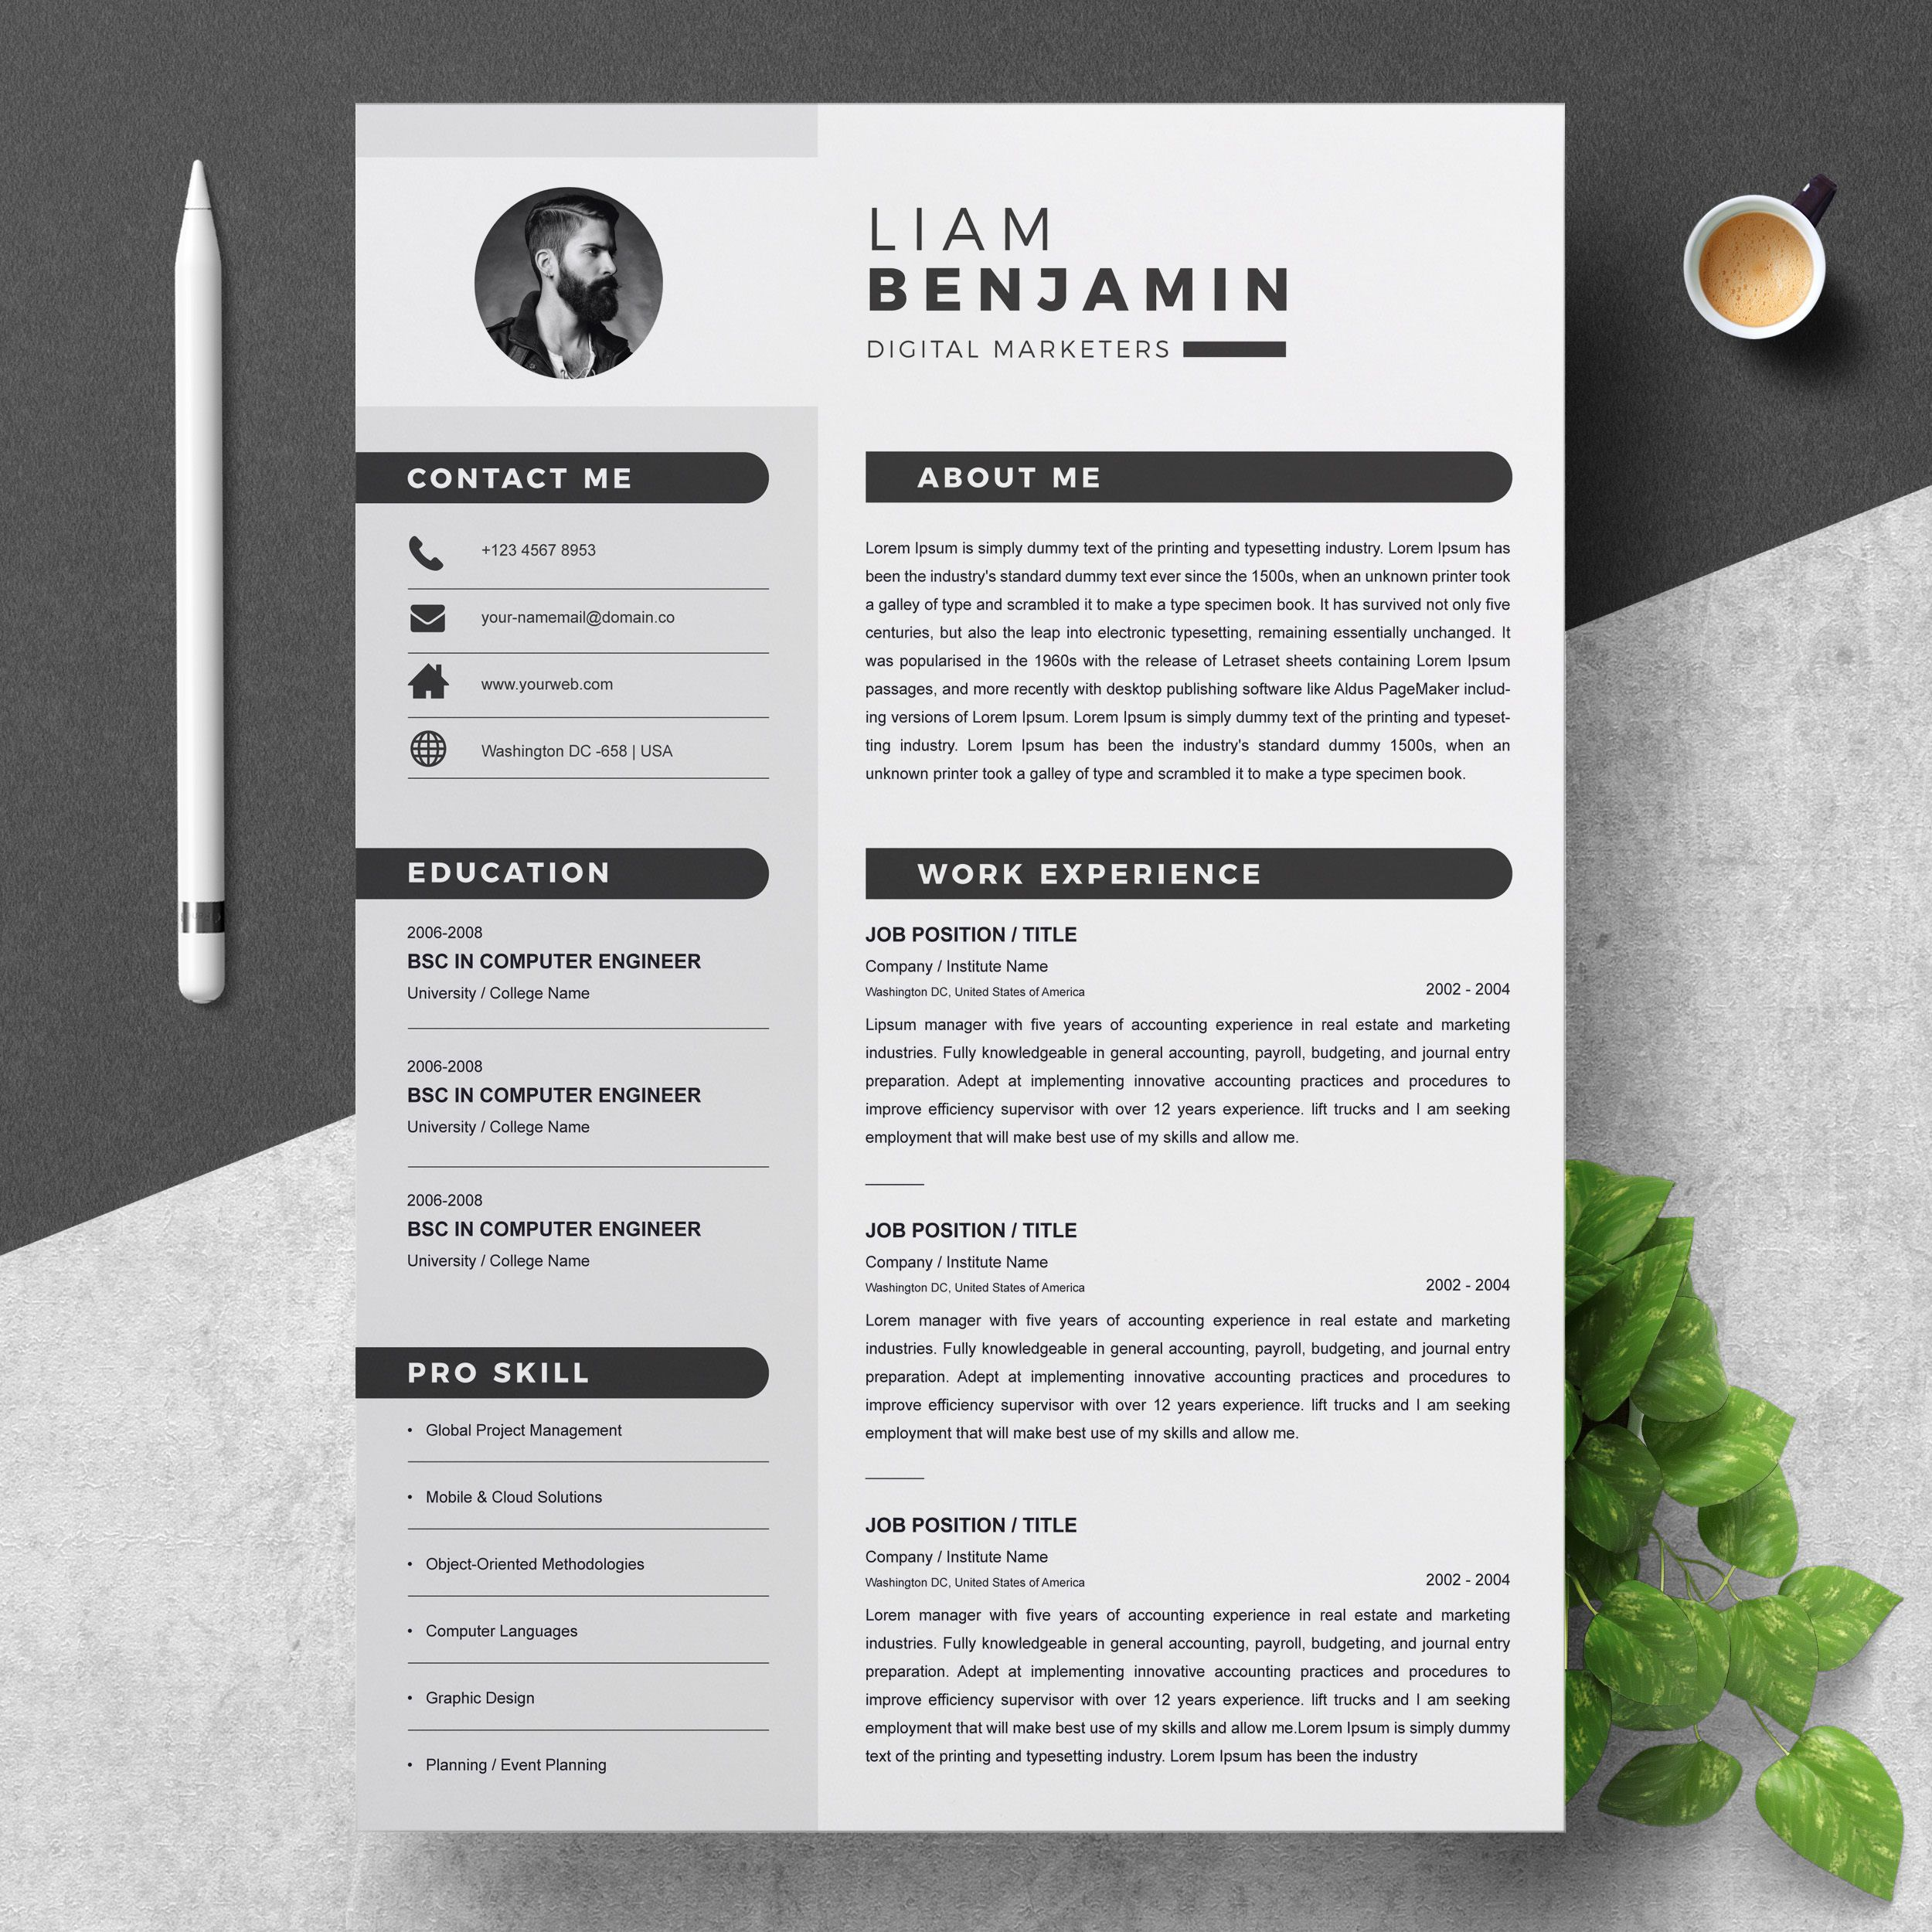 000 Rare Resume Template Free Word Image  Download Document 2020 For FresherFull